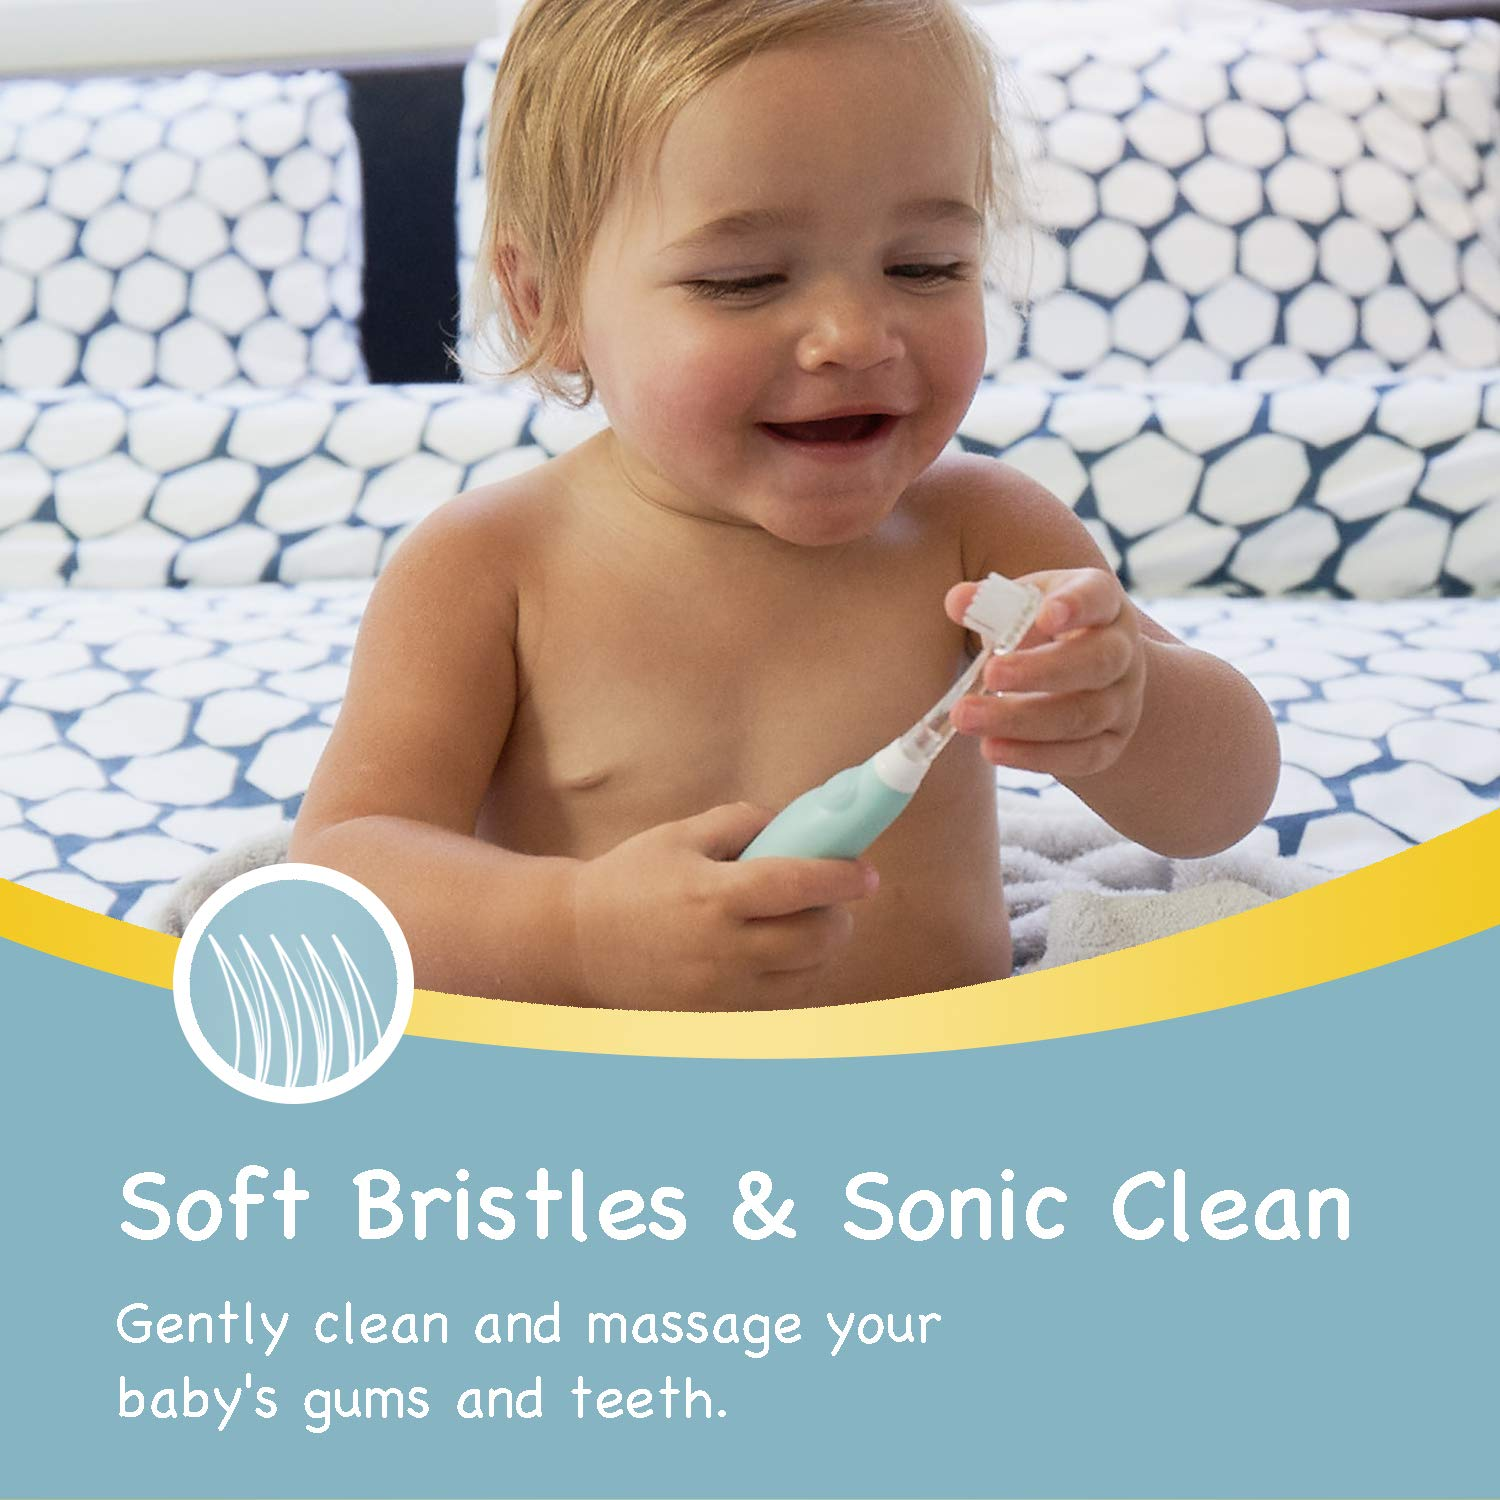 Papablic BabyHandy 2-Stage Sonic Electric Toothbrush for Babies and Toddlers Ages 0-3 Years by Papablic (Image #4)